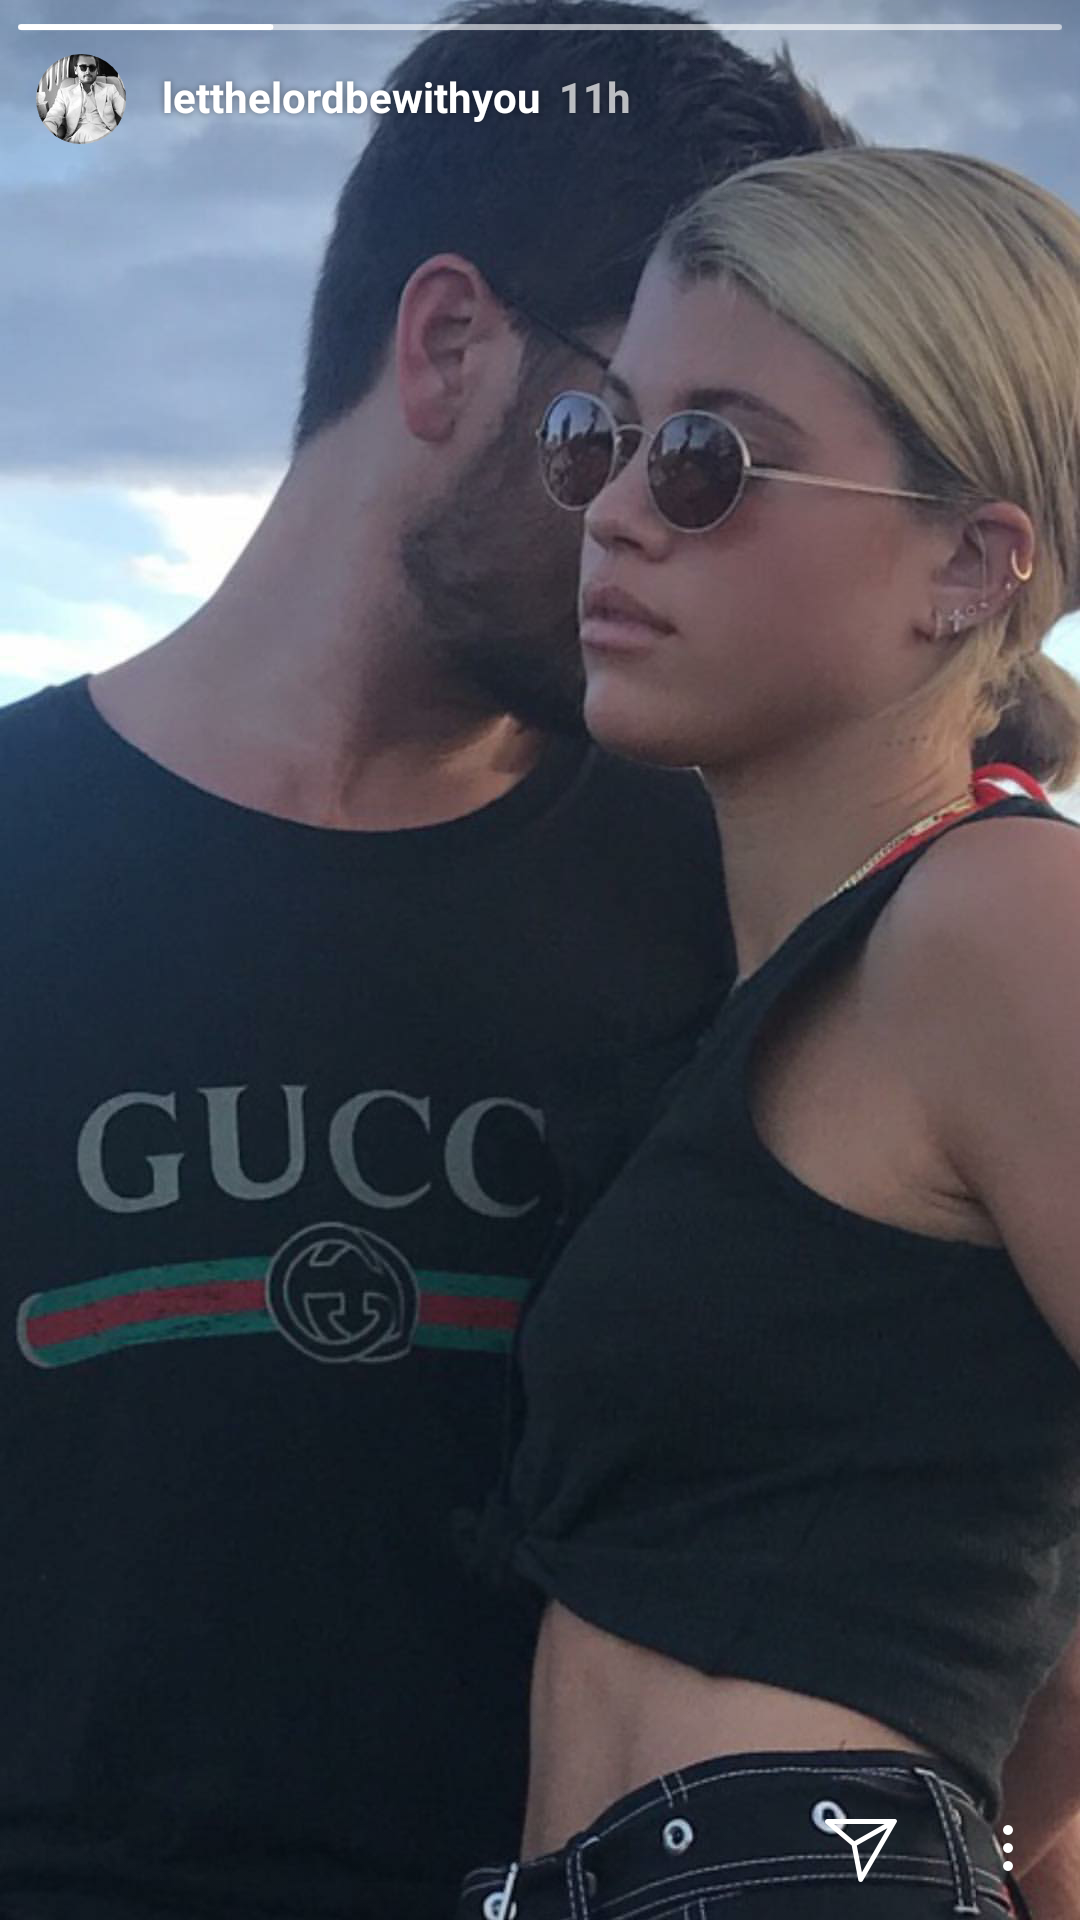 What Backlash? Sofia Richie & Scott Disick go public with their relationship on social media